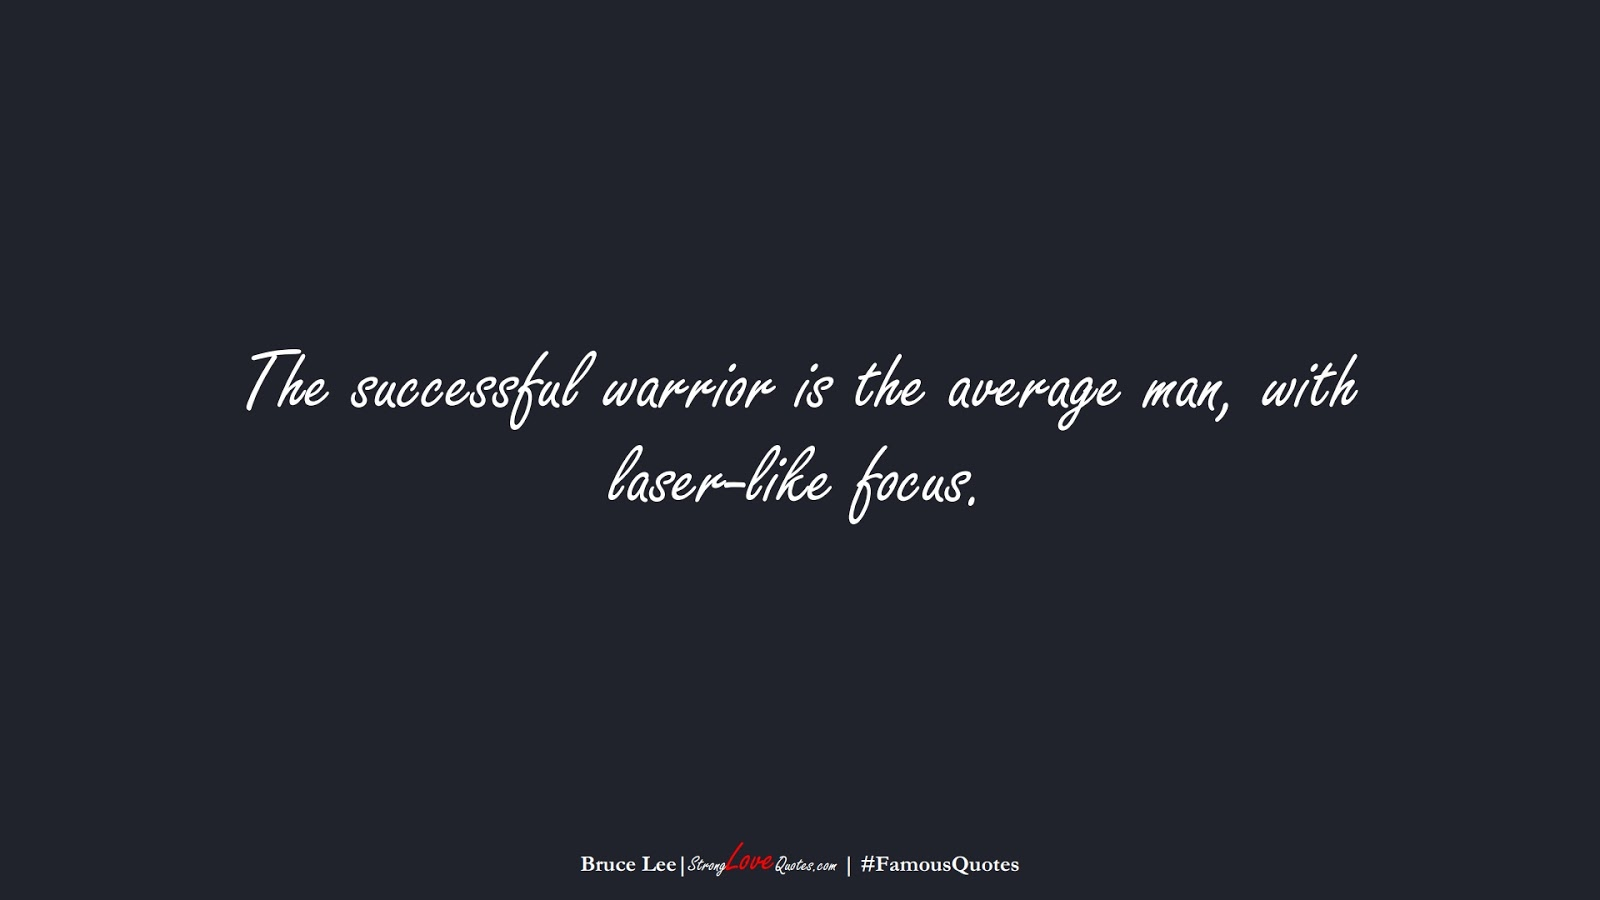 The successful warrior is the average man, with laser-like focus. (Bruce Lee);  #FamousQuotes